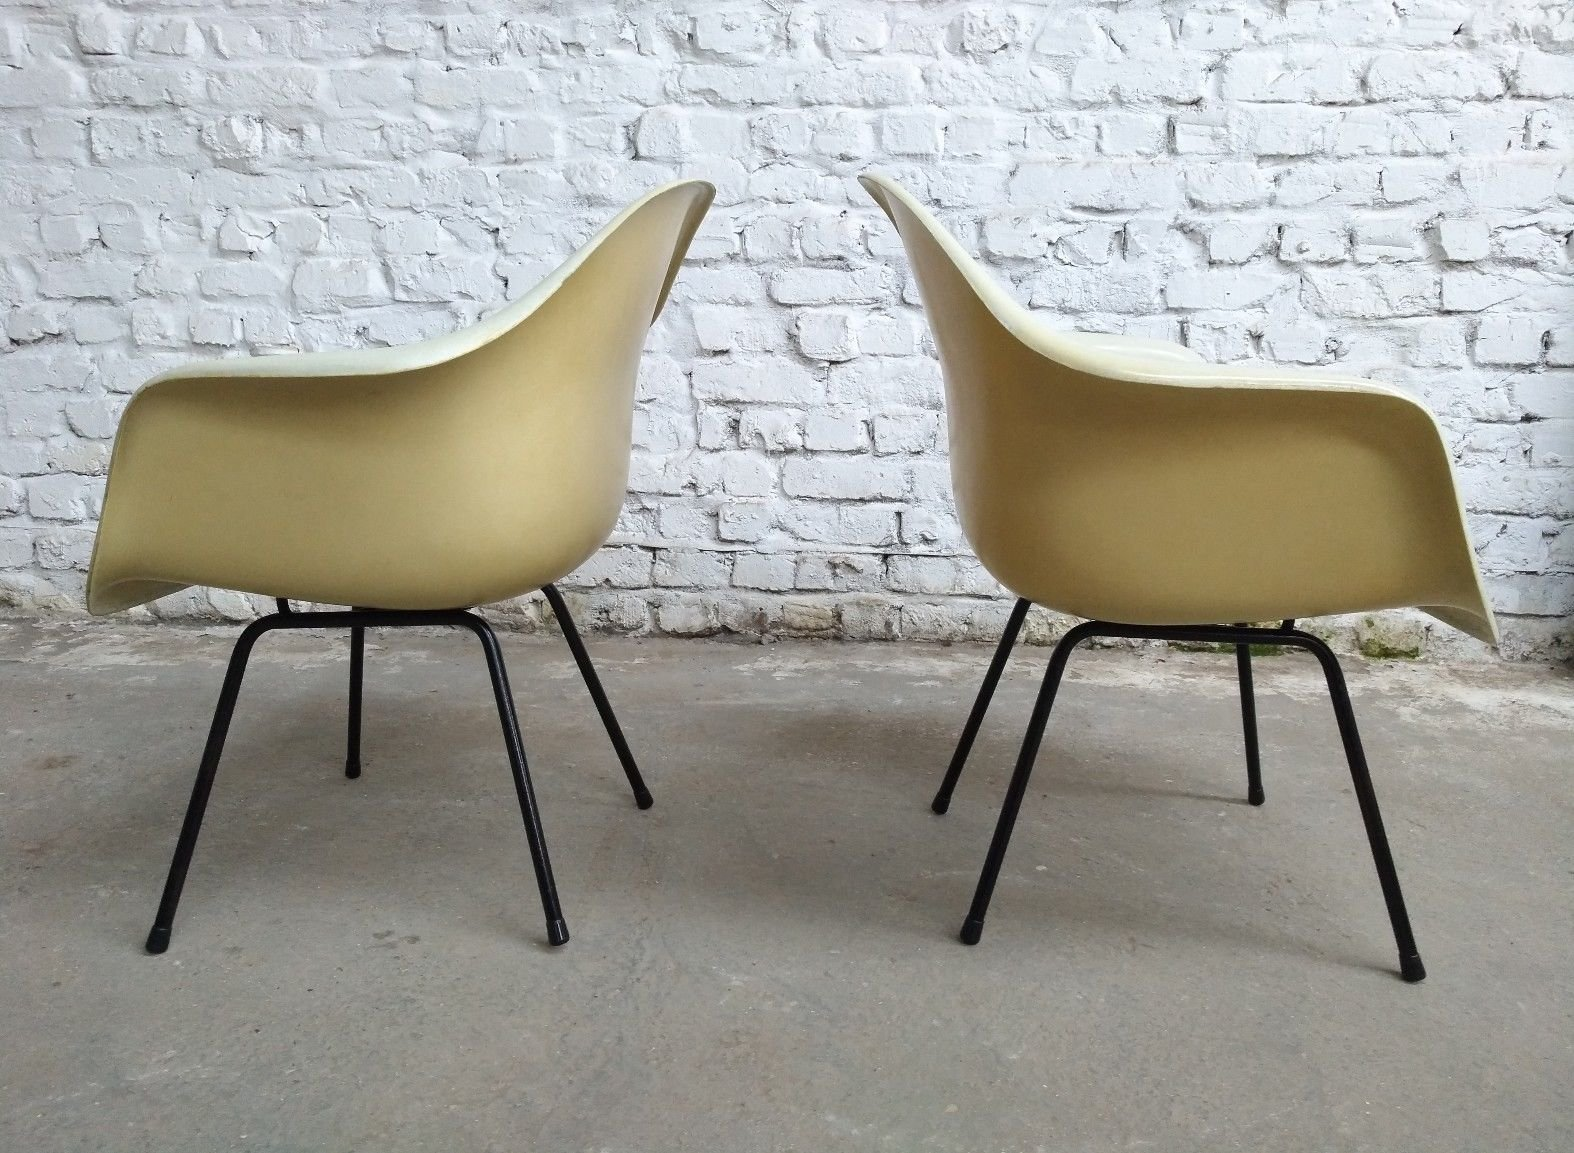 Lax easy lounge chairs by charles ray eames for mobilier for Mobilier international eames